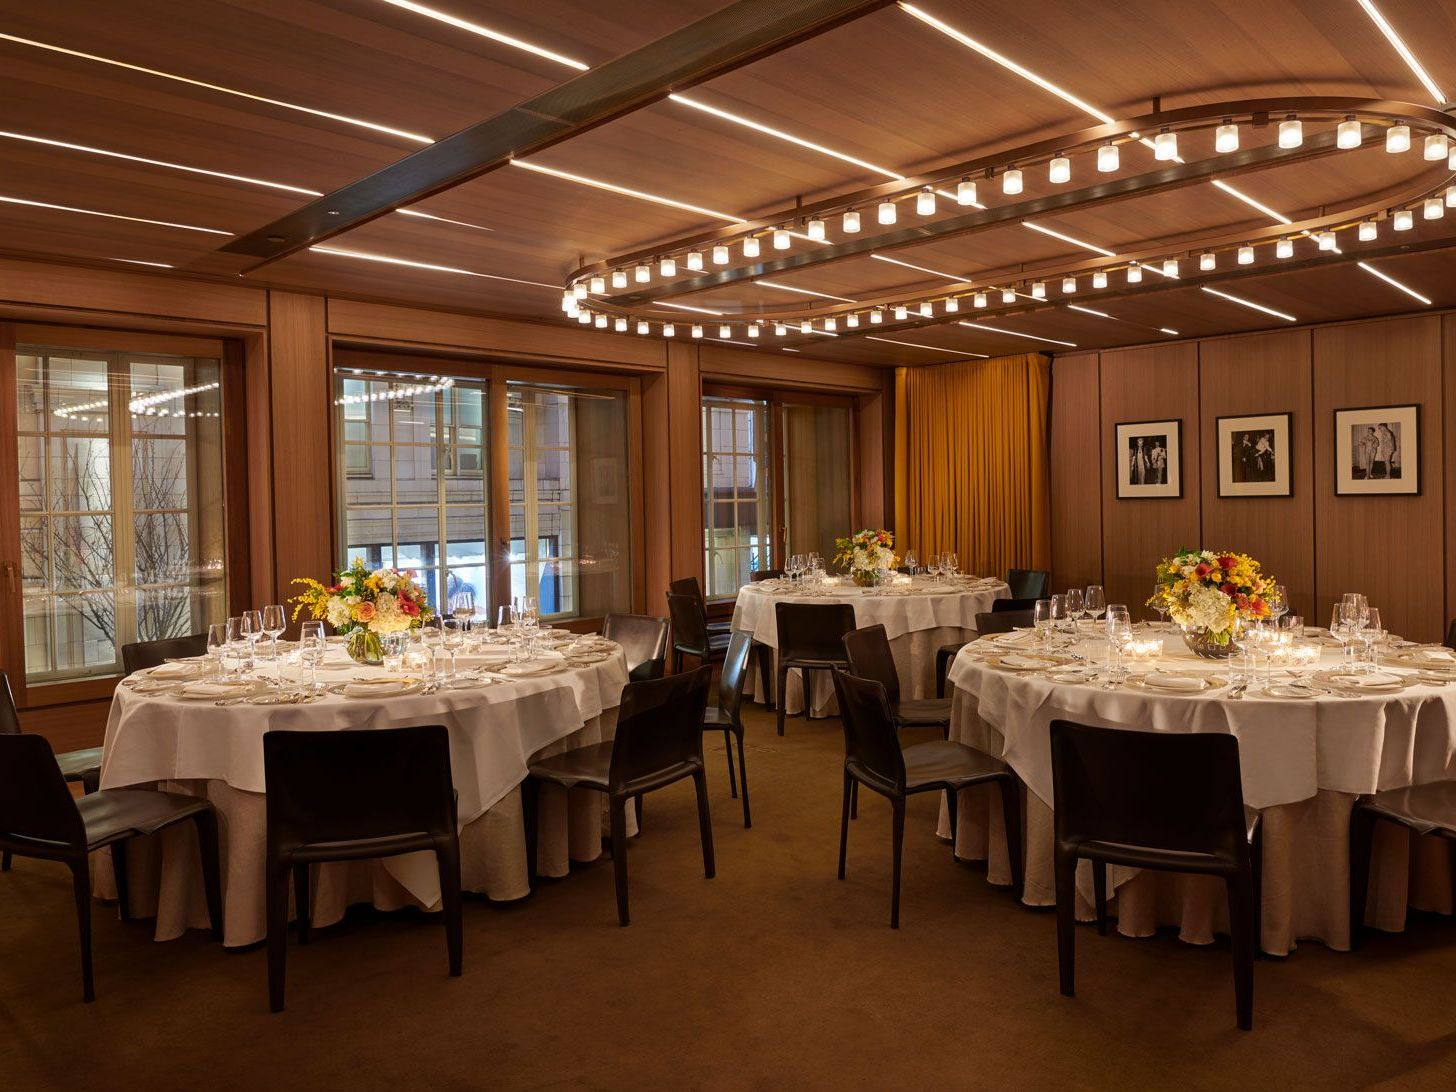 soho room private dining dinner set up hotel cafe royal regent street london